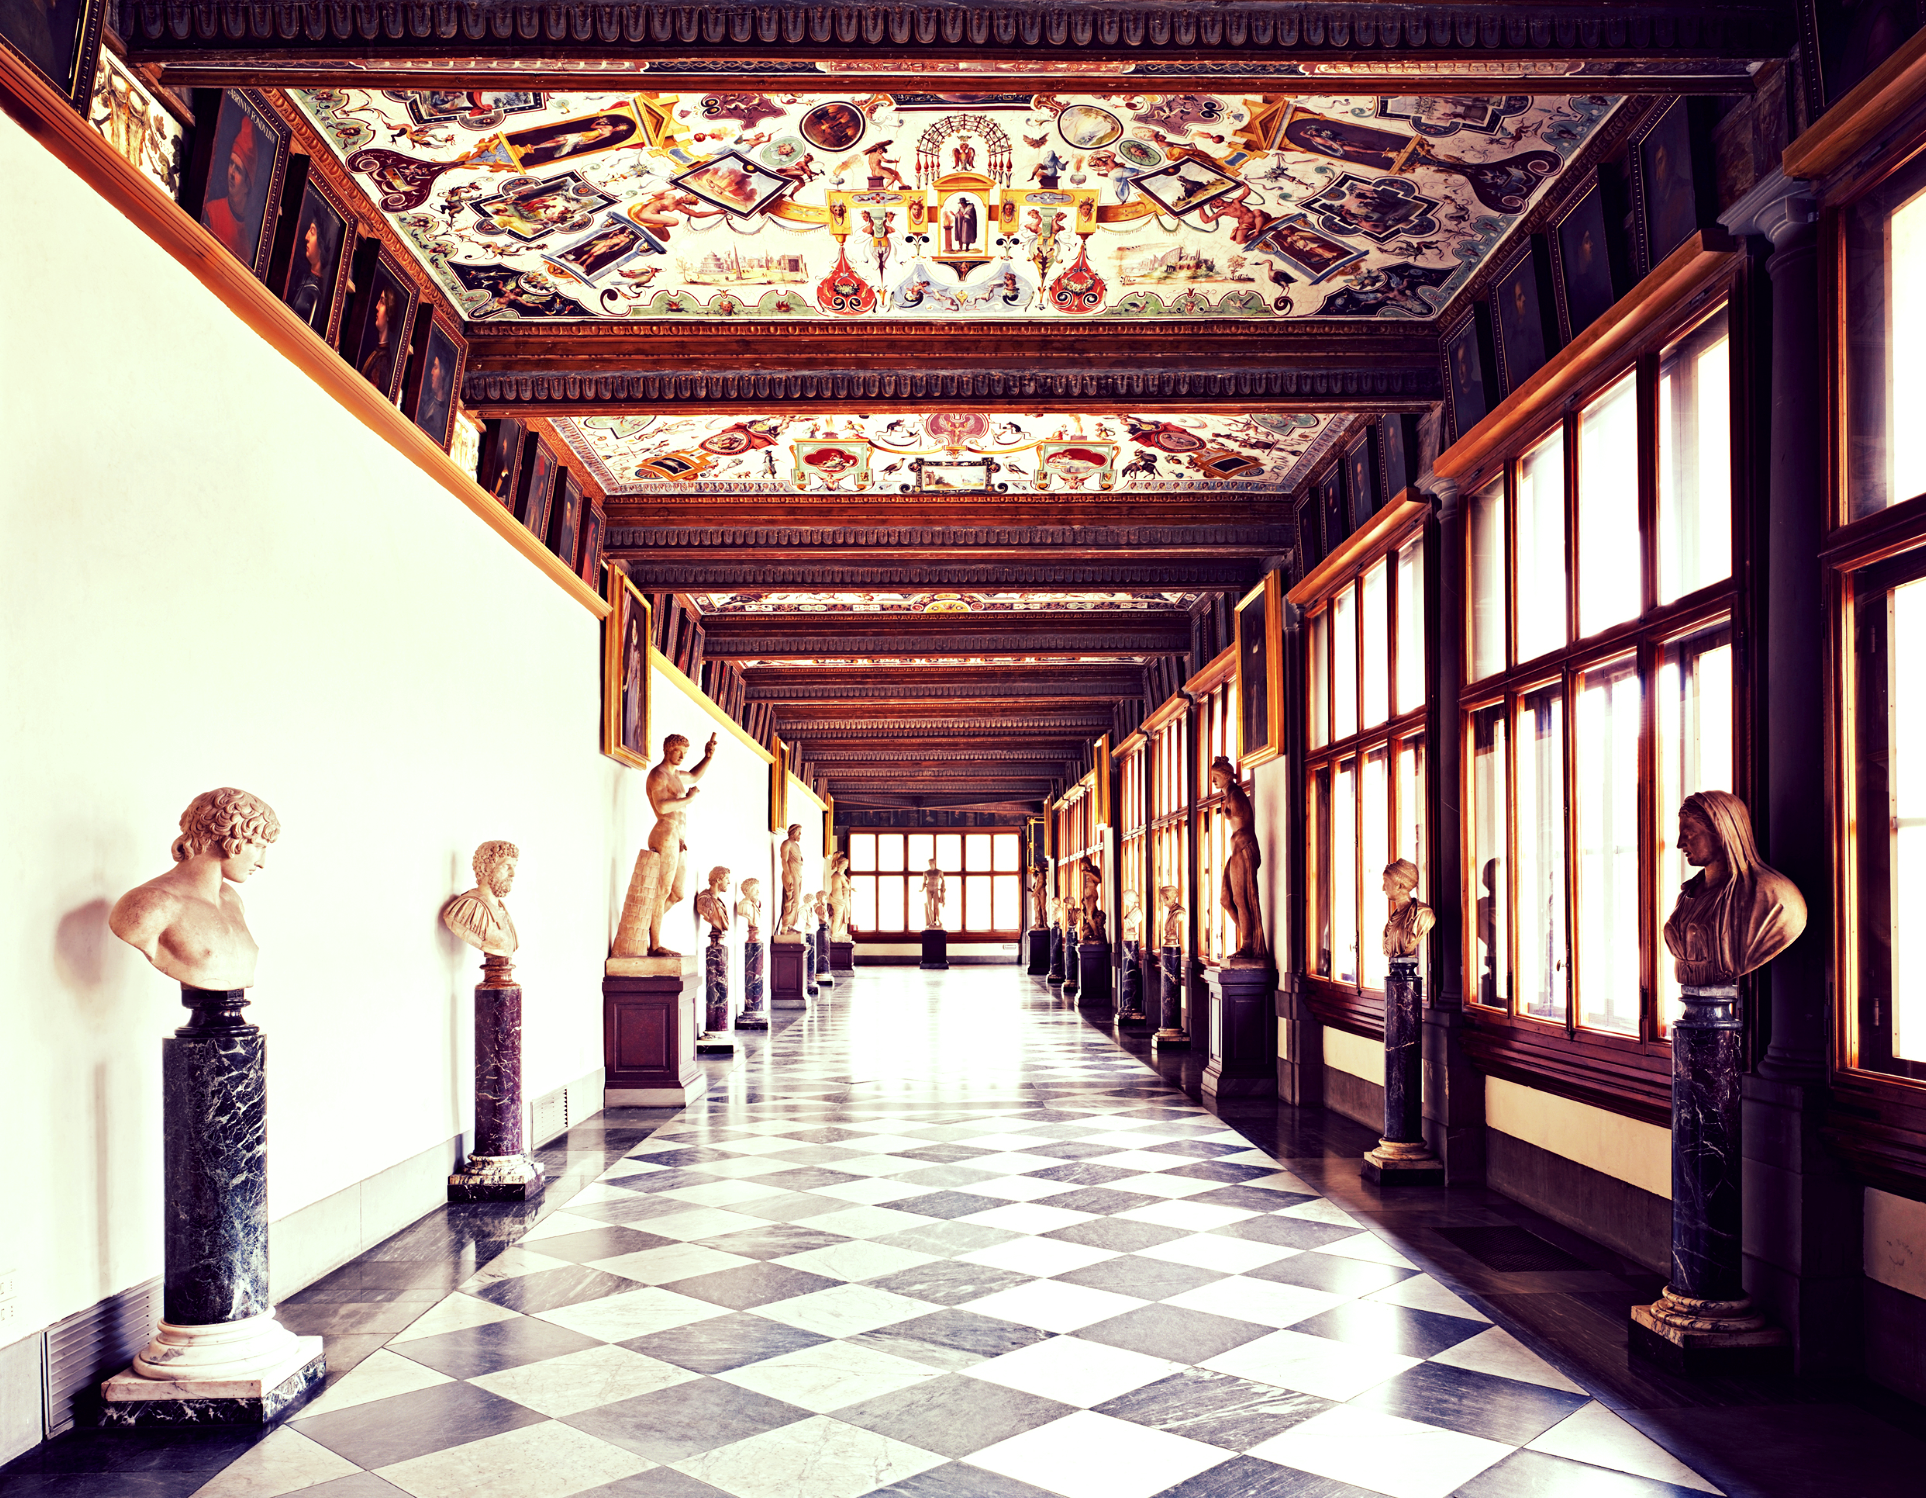 The Uffizi Gallery is a must-see destination. Tickets are best obtained in advance via the gallery's official website.